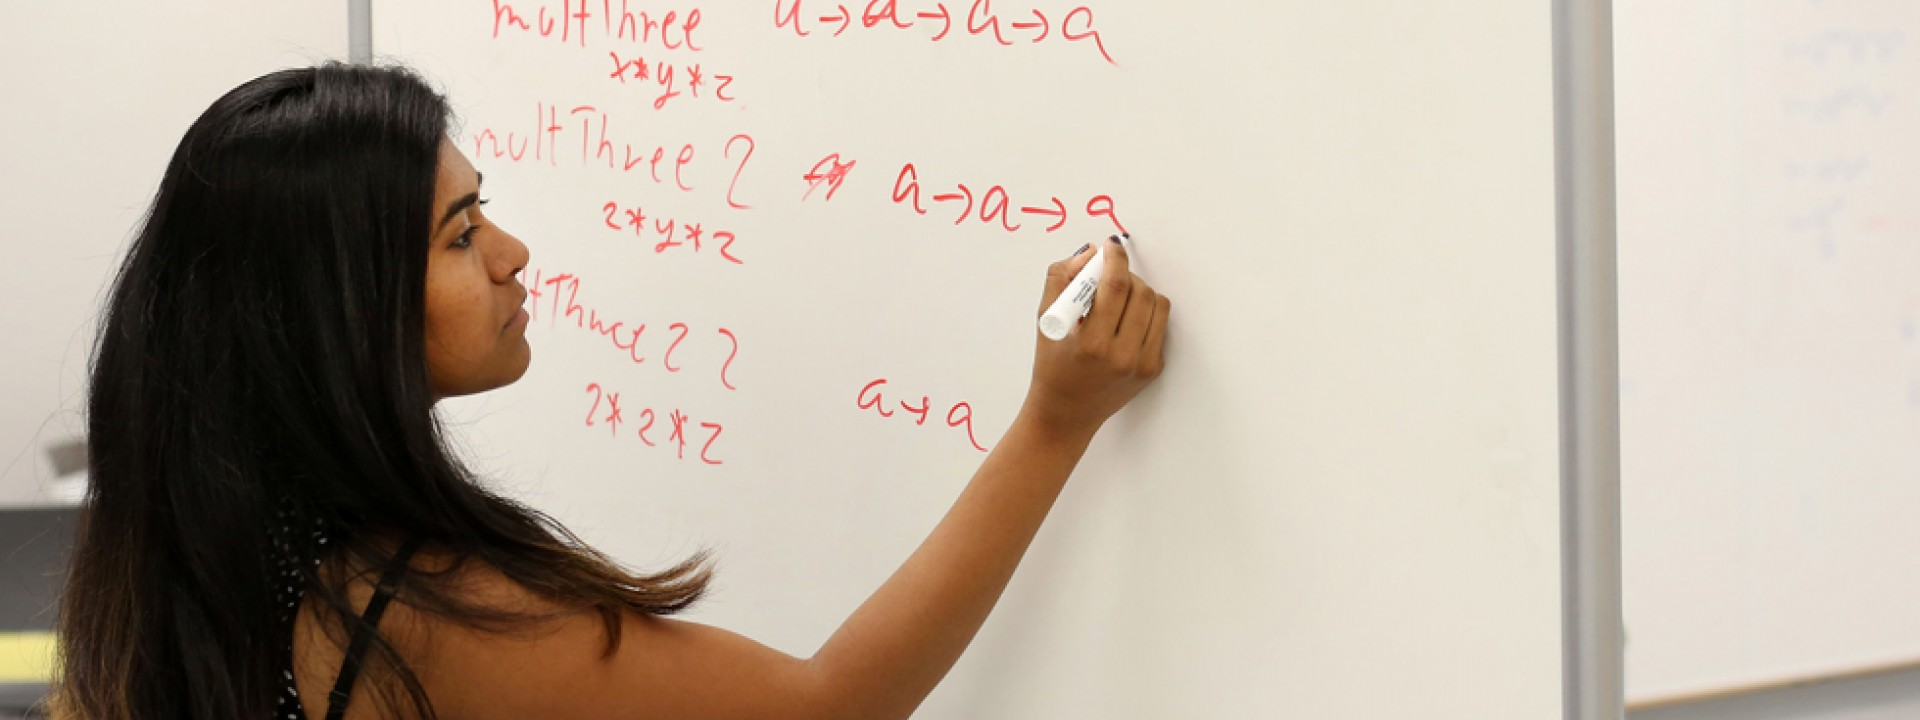 Image of a female student writing an equation on a dry erase board in red ink.